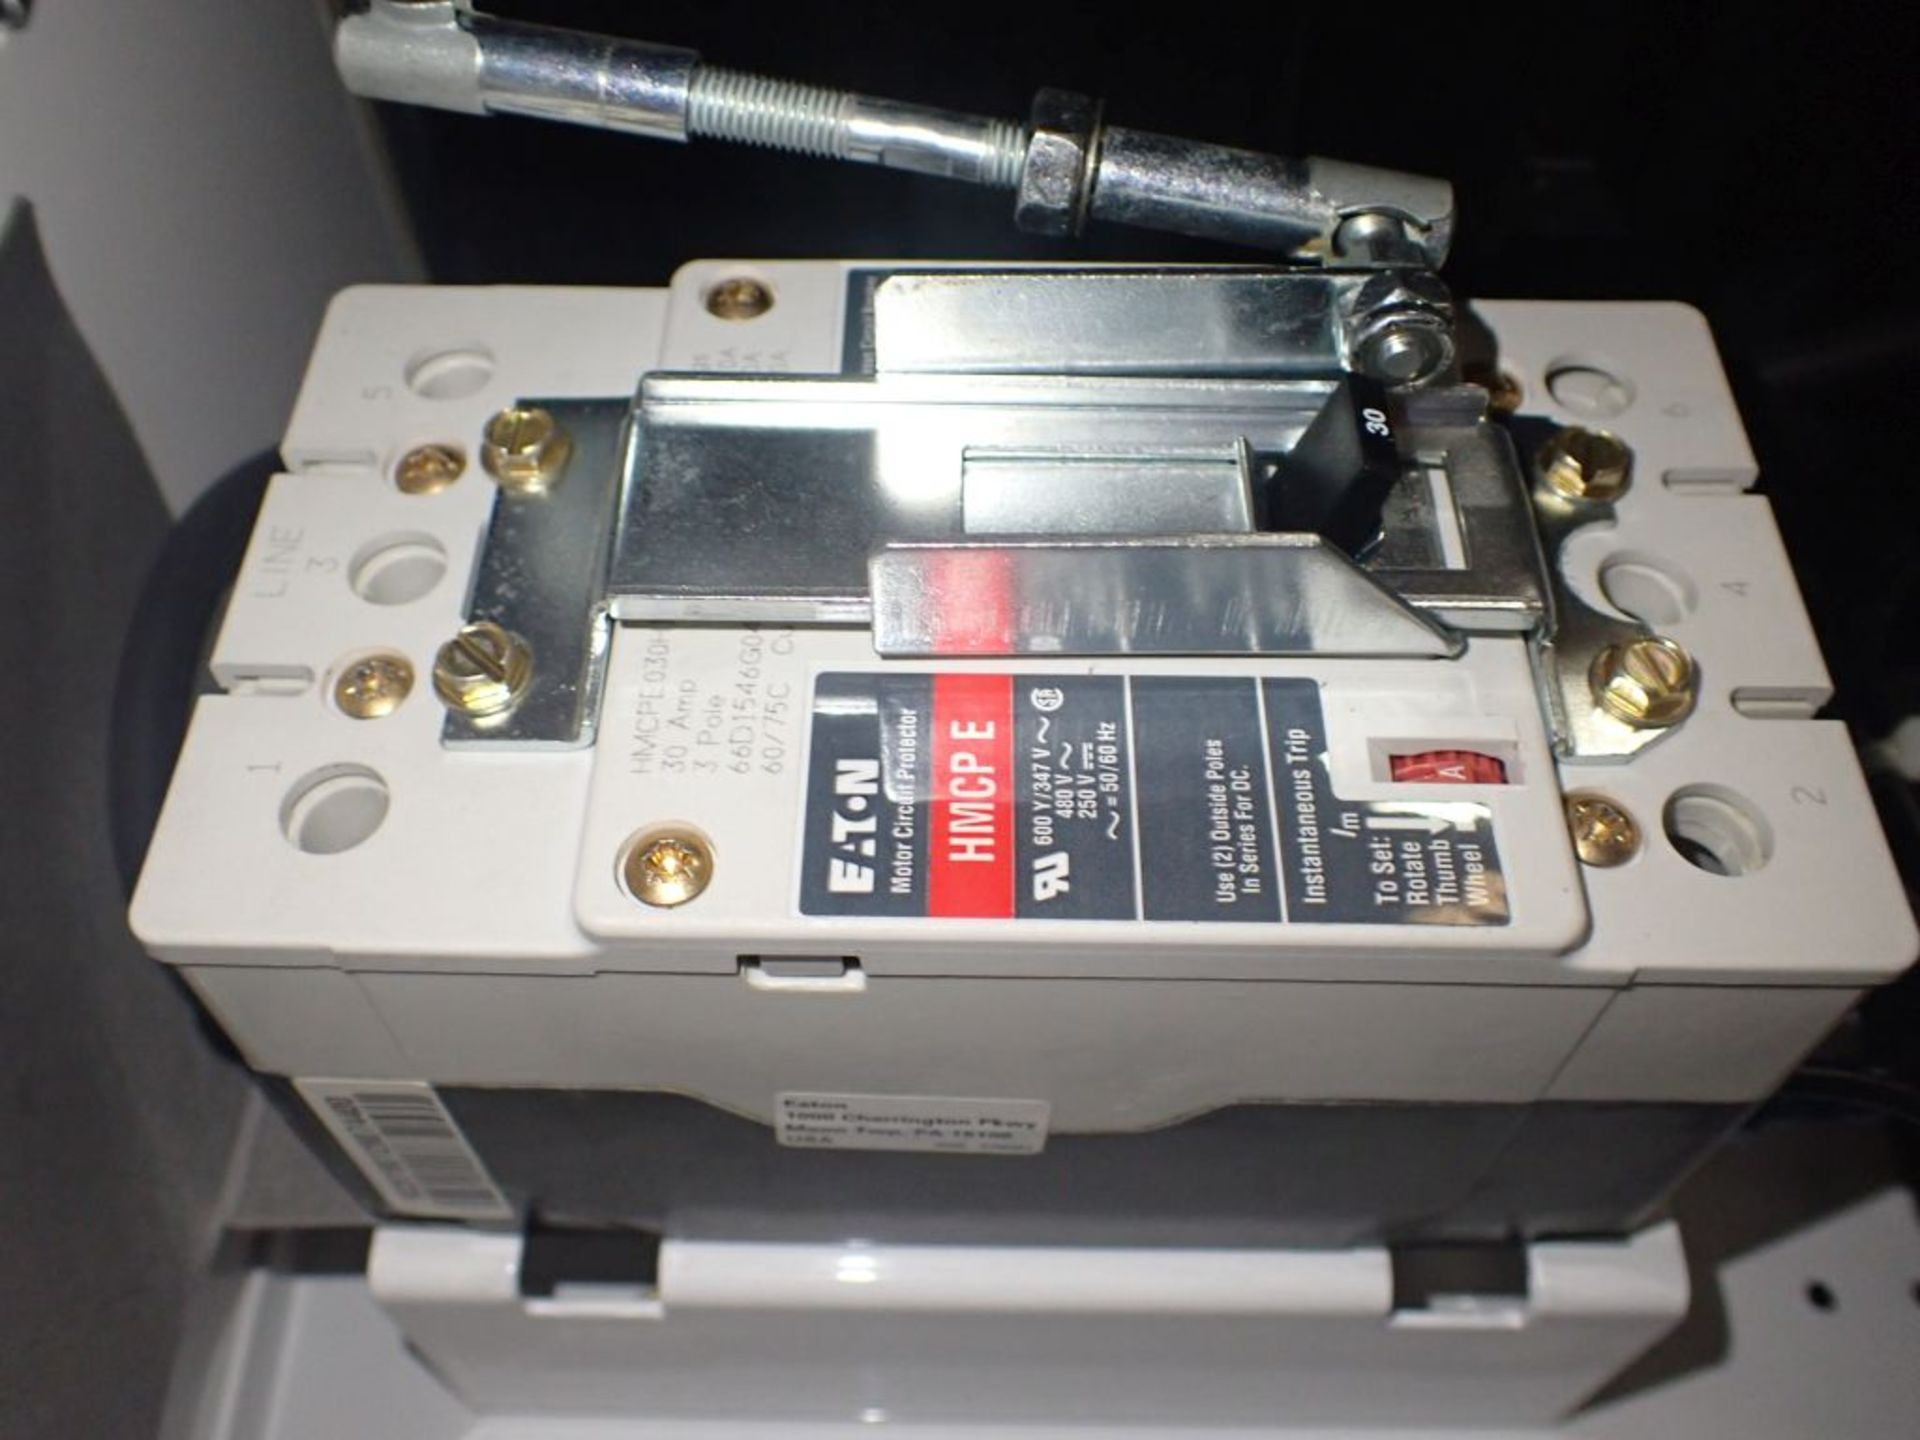 Eaton Freedom 2100 Series Motor Control Center | (2) F206-15A-10HP; (1) FDRB-250A; (1) FDRB-400A; ( - Image 16 of 104